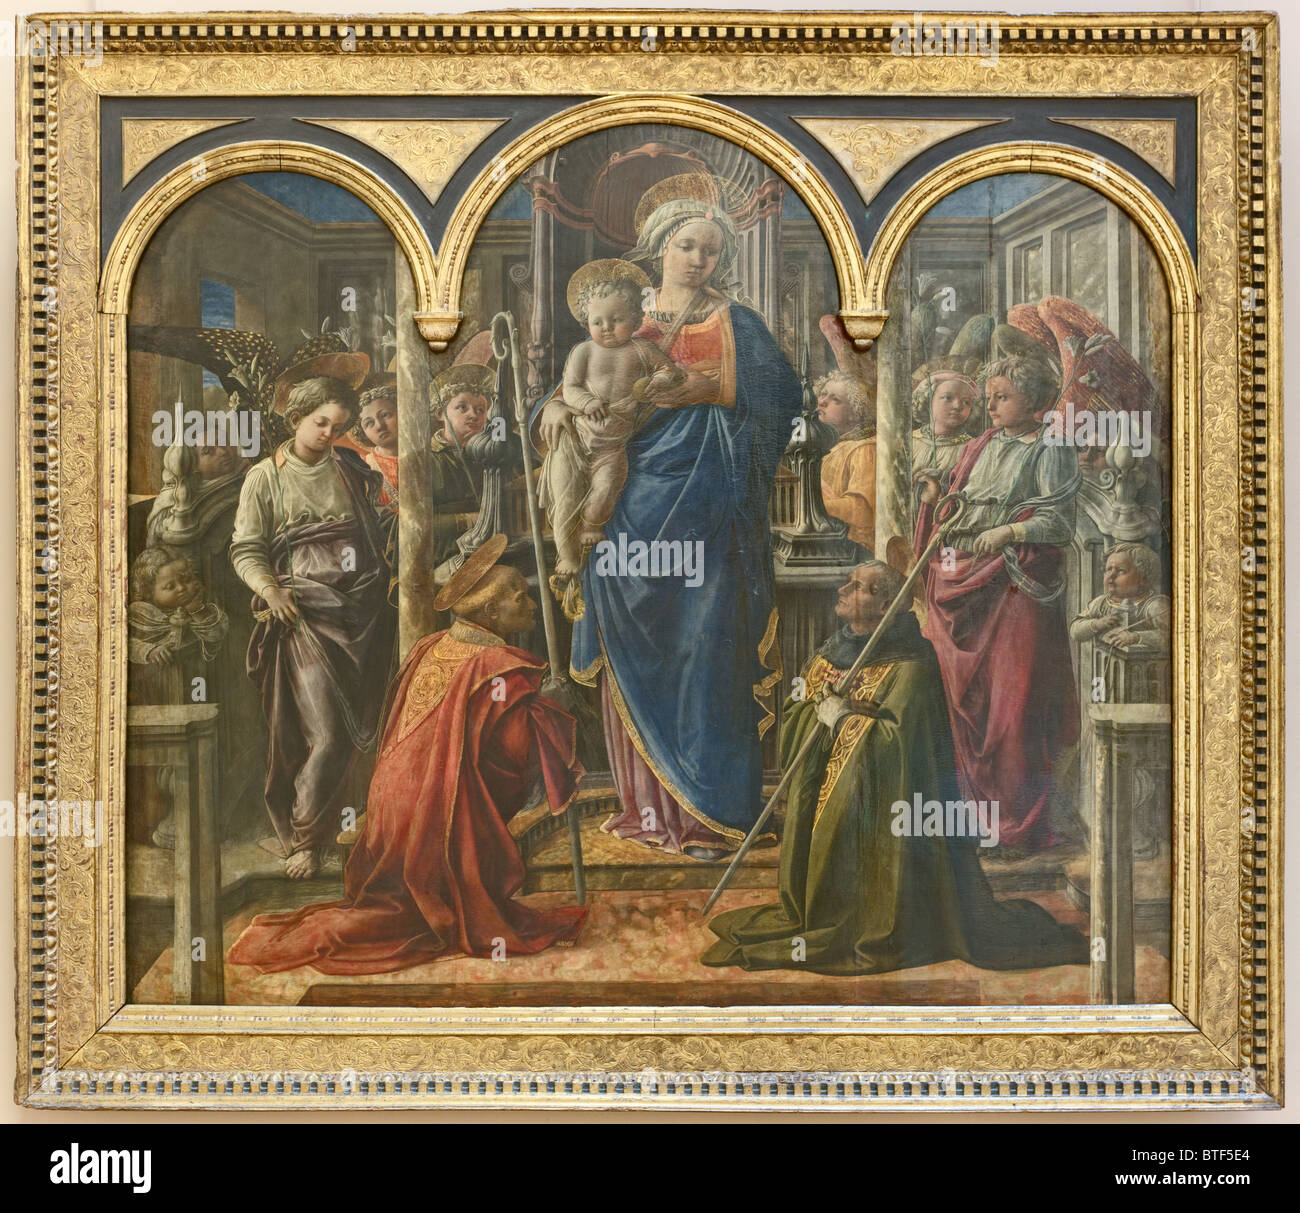 Virgin and Child with Saints Frediano and Augustine, known as the Barbadori Altarpiece, painting by Filippo LIPPI, - Stock Image